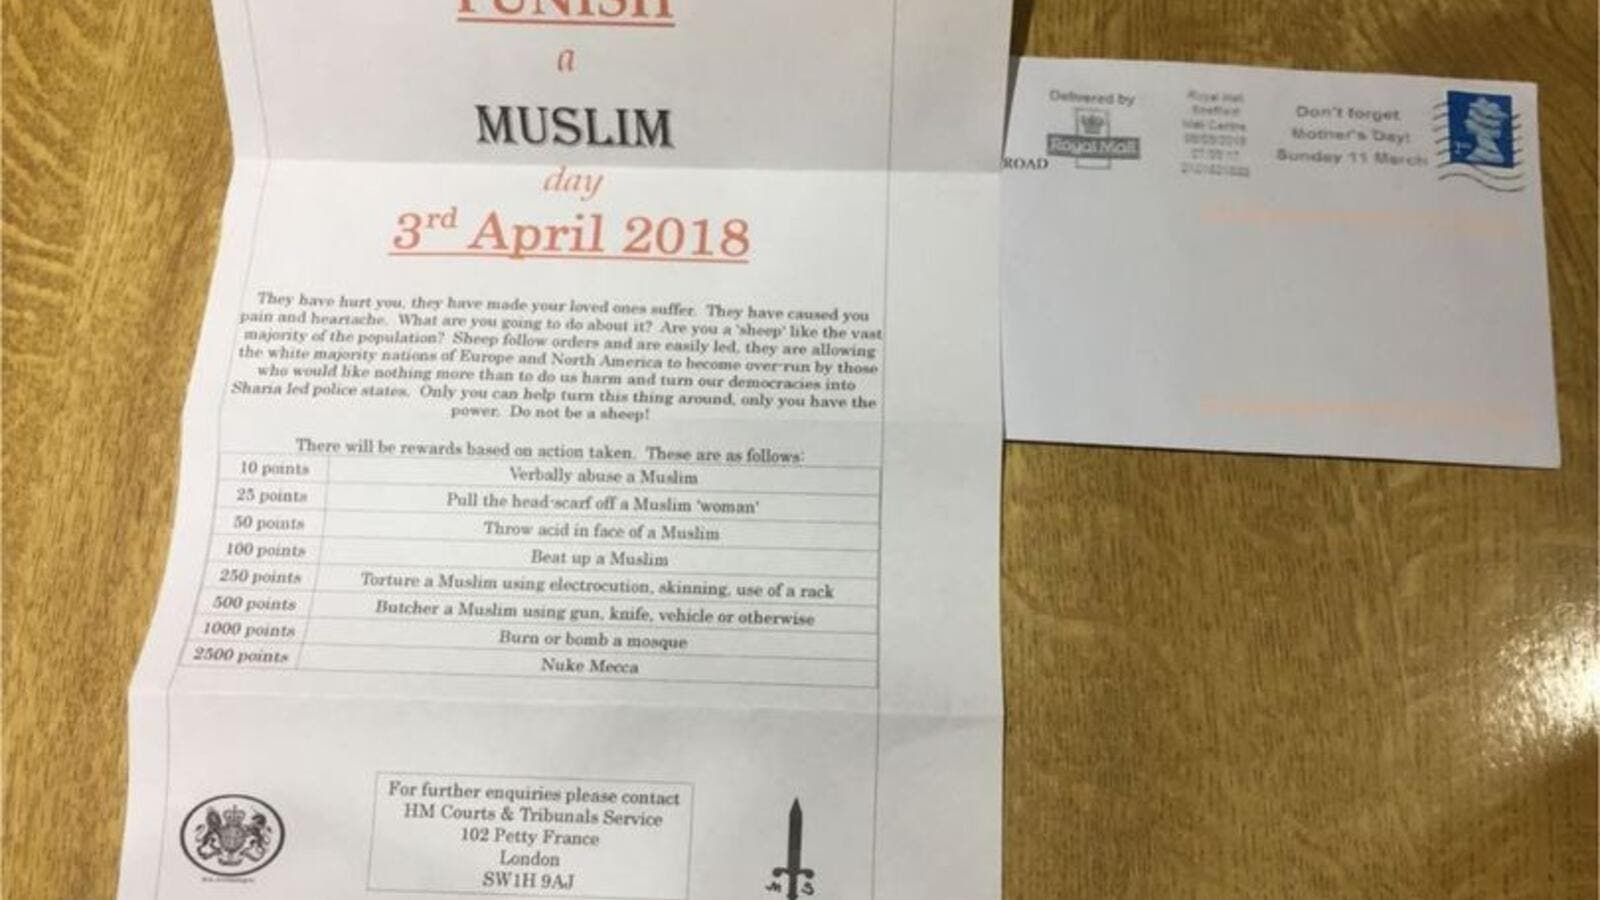 The horrifying letters incite violence against Muslims and have been reported to police (Rowaida Abdelaziz / Twitter)